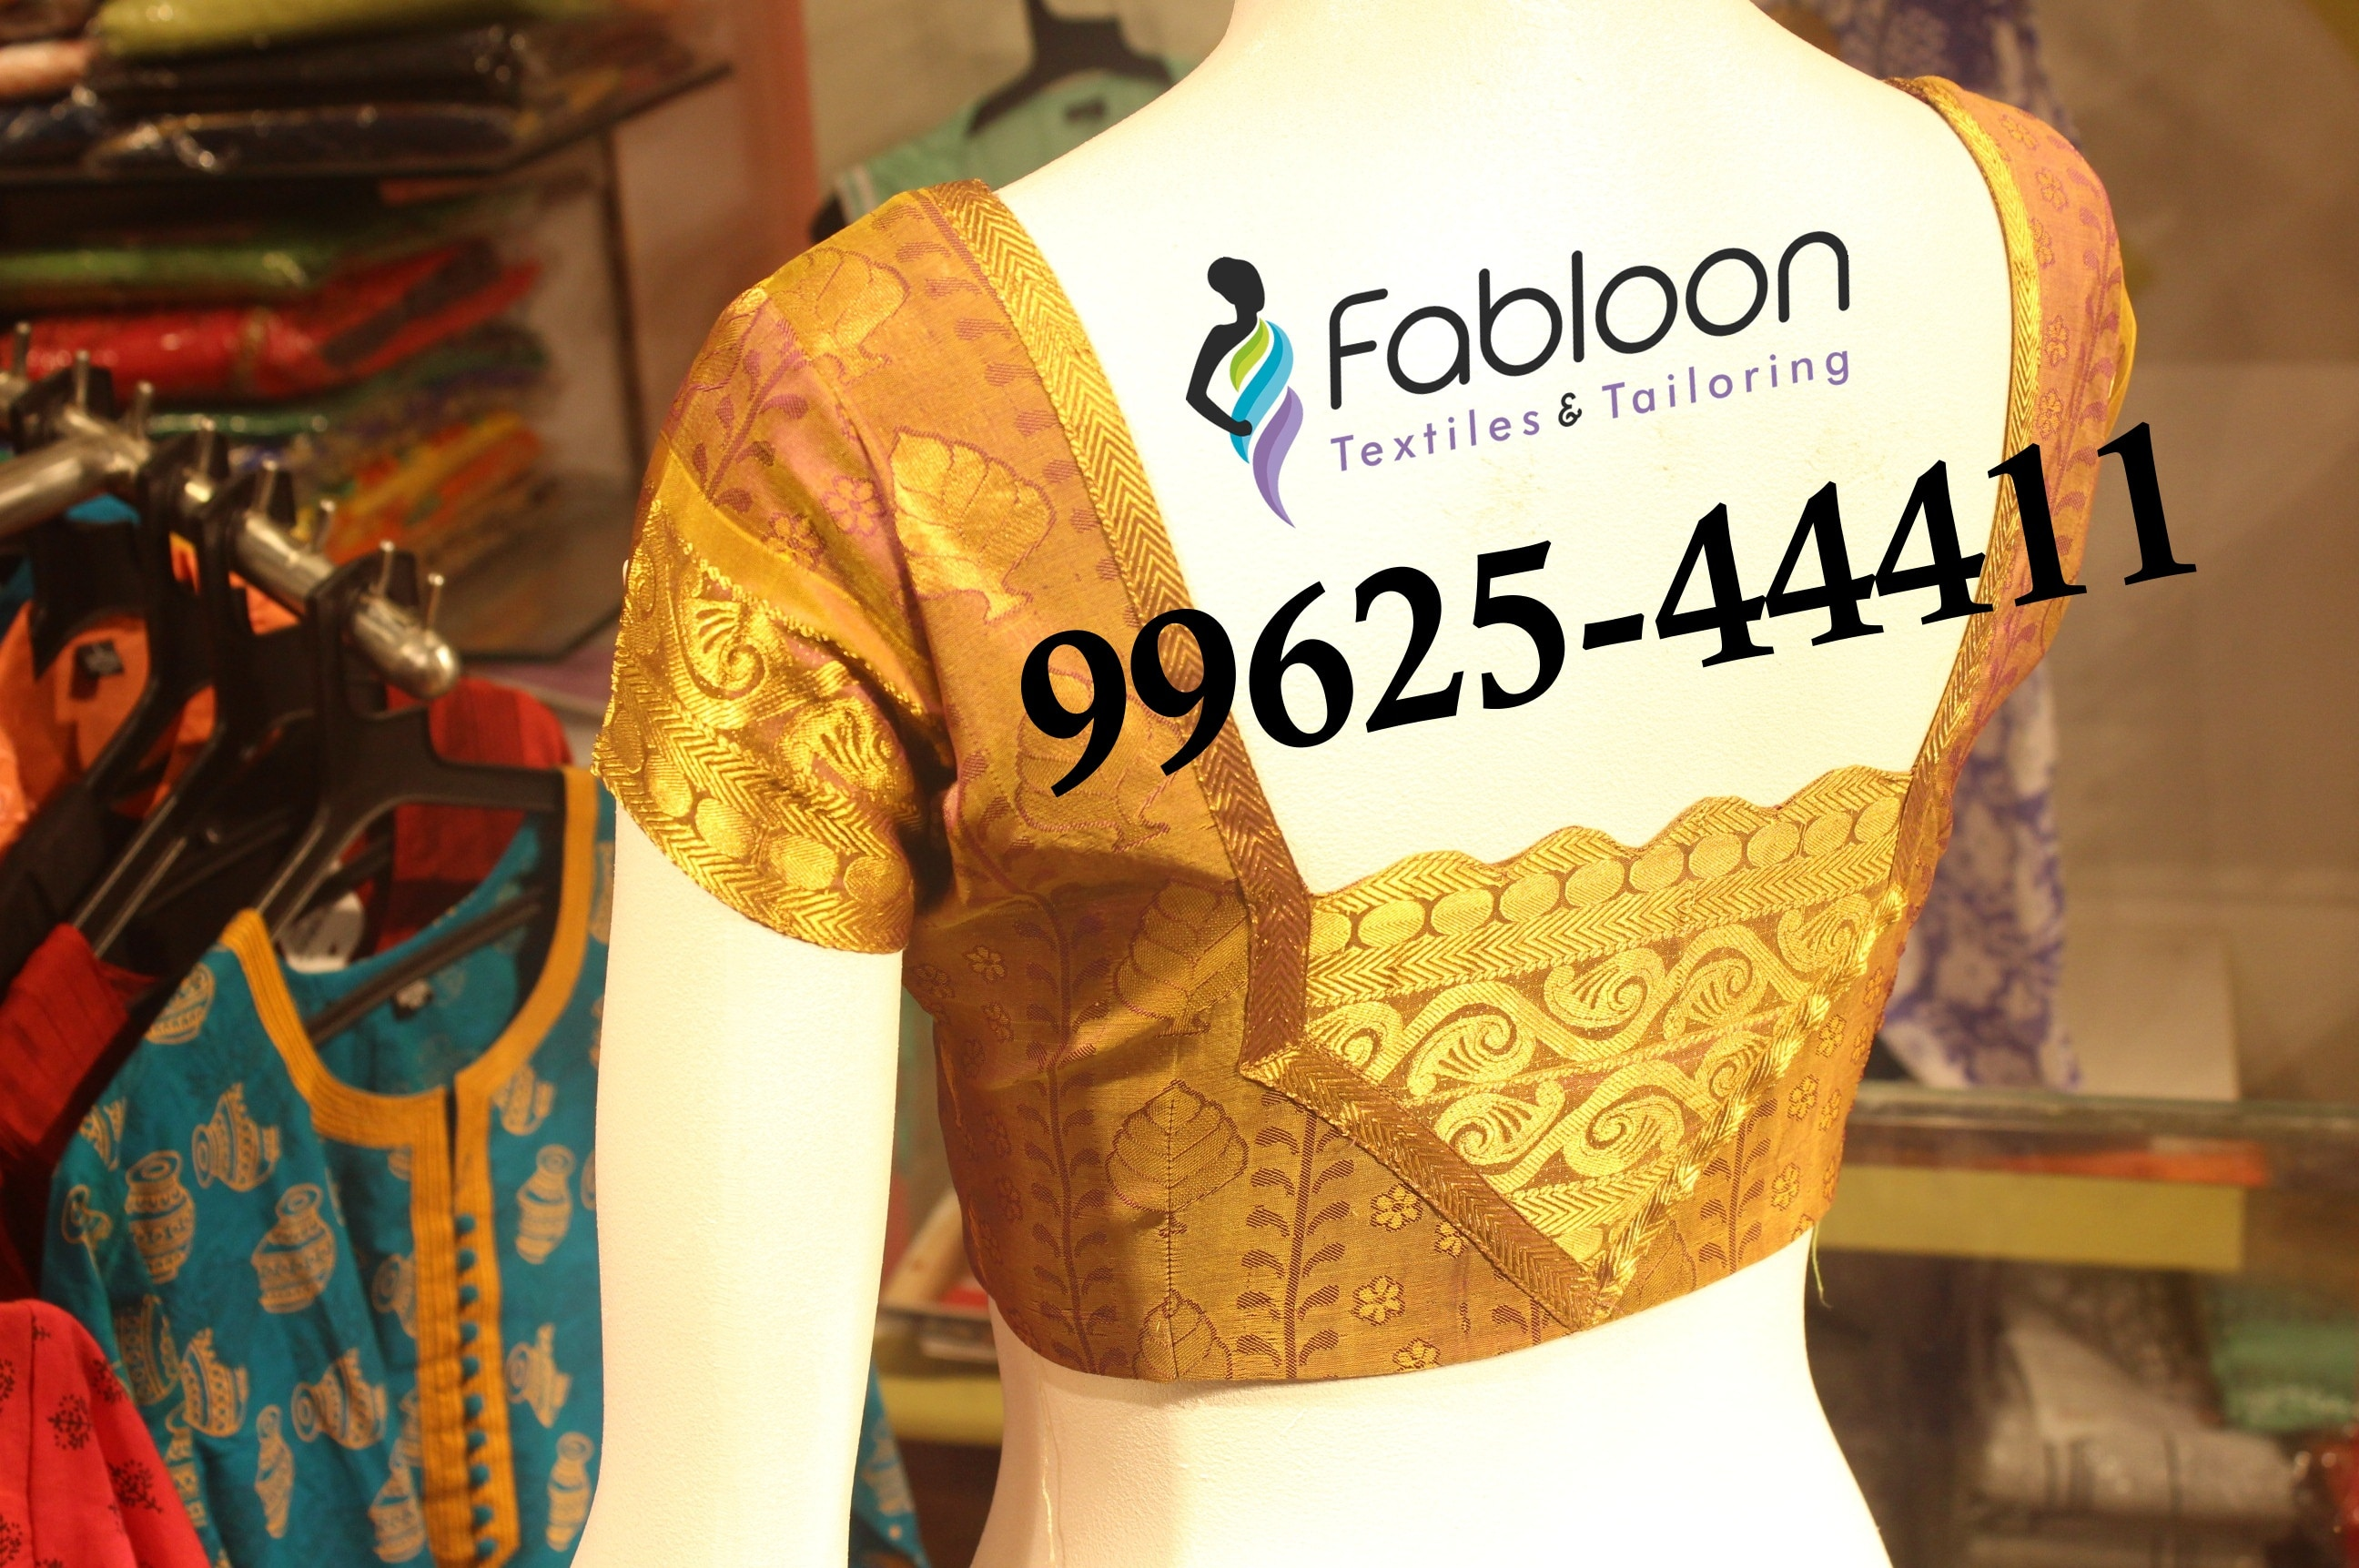 Designer Pattu Pattern Blouse At Fabloon Chudidhar Bottom Stitching In Vadapalani, Mob: +91 9962544411, 044 48644411.  Extensive Variety of Designer Pattern Blouse in our showroom Fabloon. Astounding Sewing and Trendy Designs in Blouses. Bollywood Inspired Designs for Blouses. The Trendy Neckline and Back Designs and Patterns. Latest Model Designs of Blouses at Fabloon. Exclusive Collection of Pattu Patterns near Vadapalani. Reasonable Prices and age old tradition of making Traditional as well as Trendy Blouses. Exquisite Patterns and Designs Of Sleeves Blouse just for you. Shop for Designer Pattern Blouse at Fabloon. Check all updates for more collections.